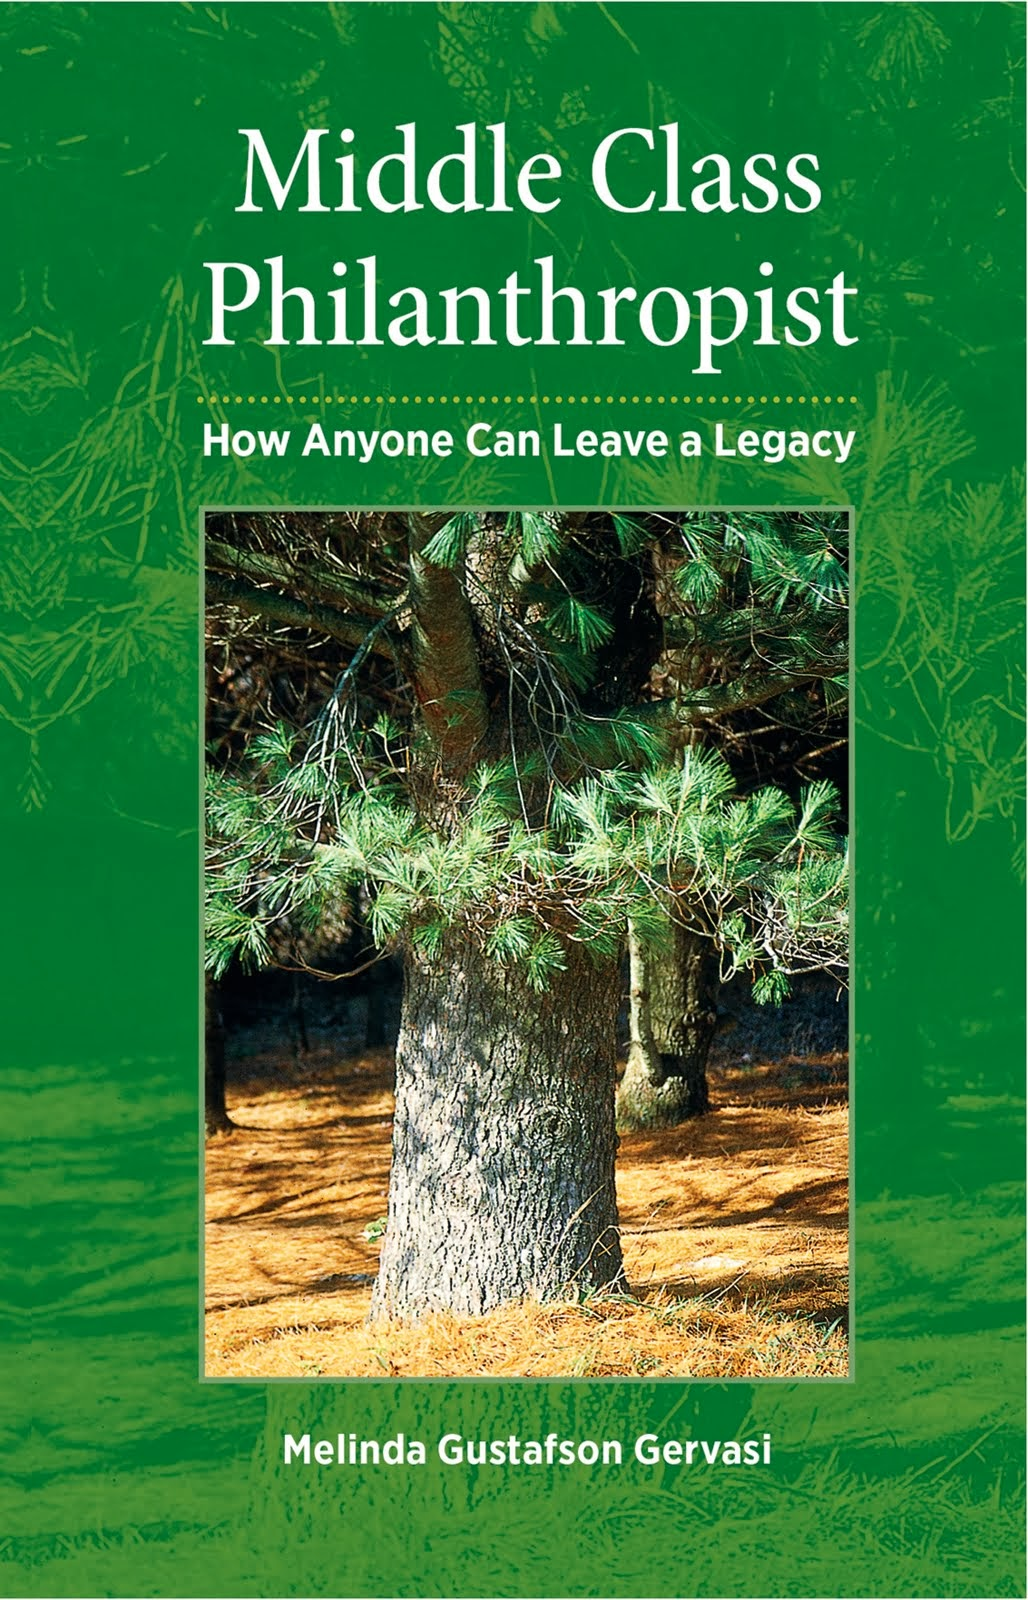 Middle Class Philanthropist: How anyone can leave a legacy by Melinda Gustafson Gervasi.